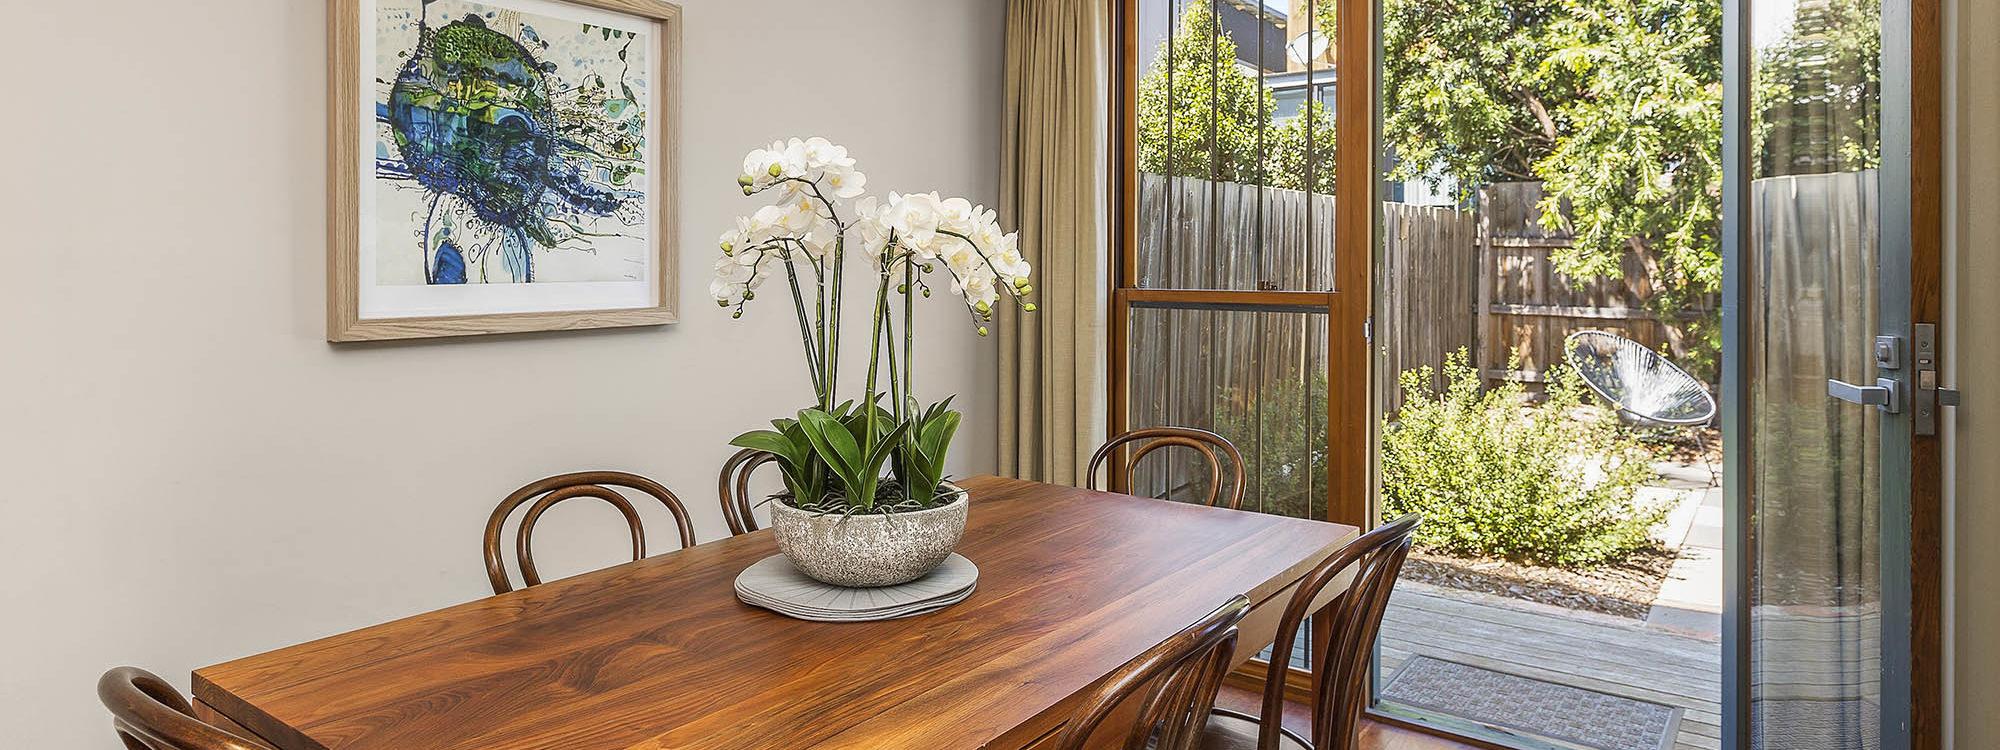 Curran Terrace - North Melbourne - Dining and Rear Courtyard